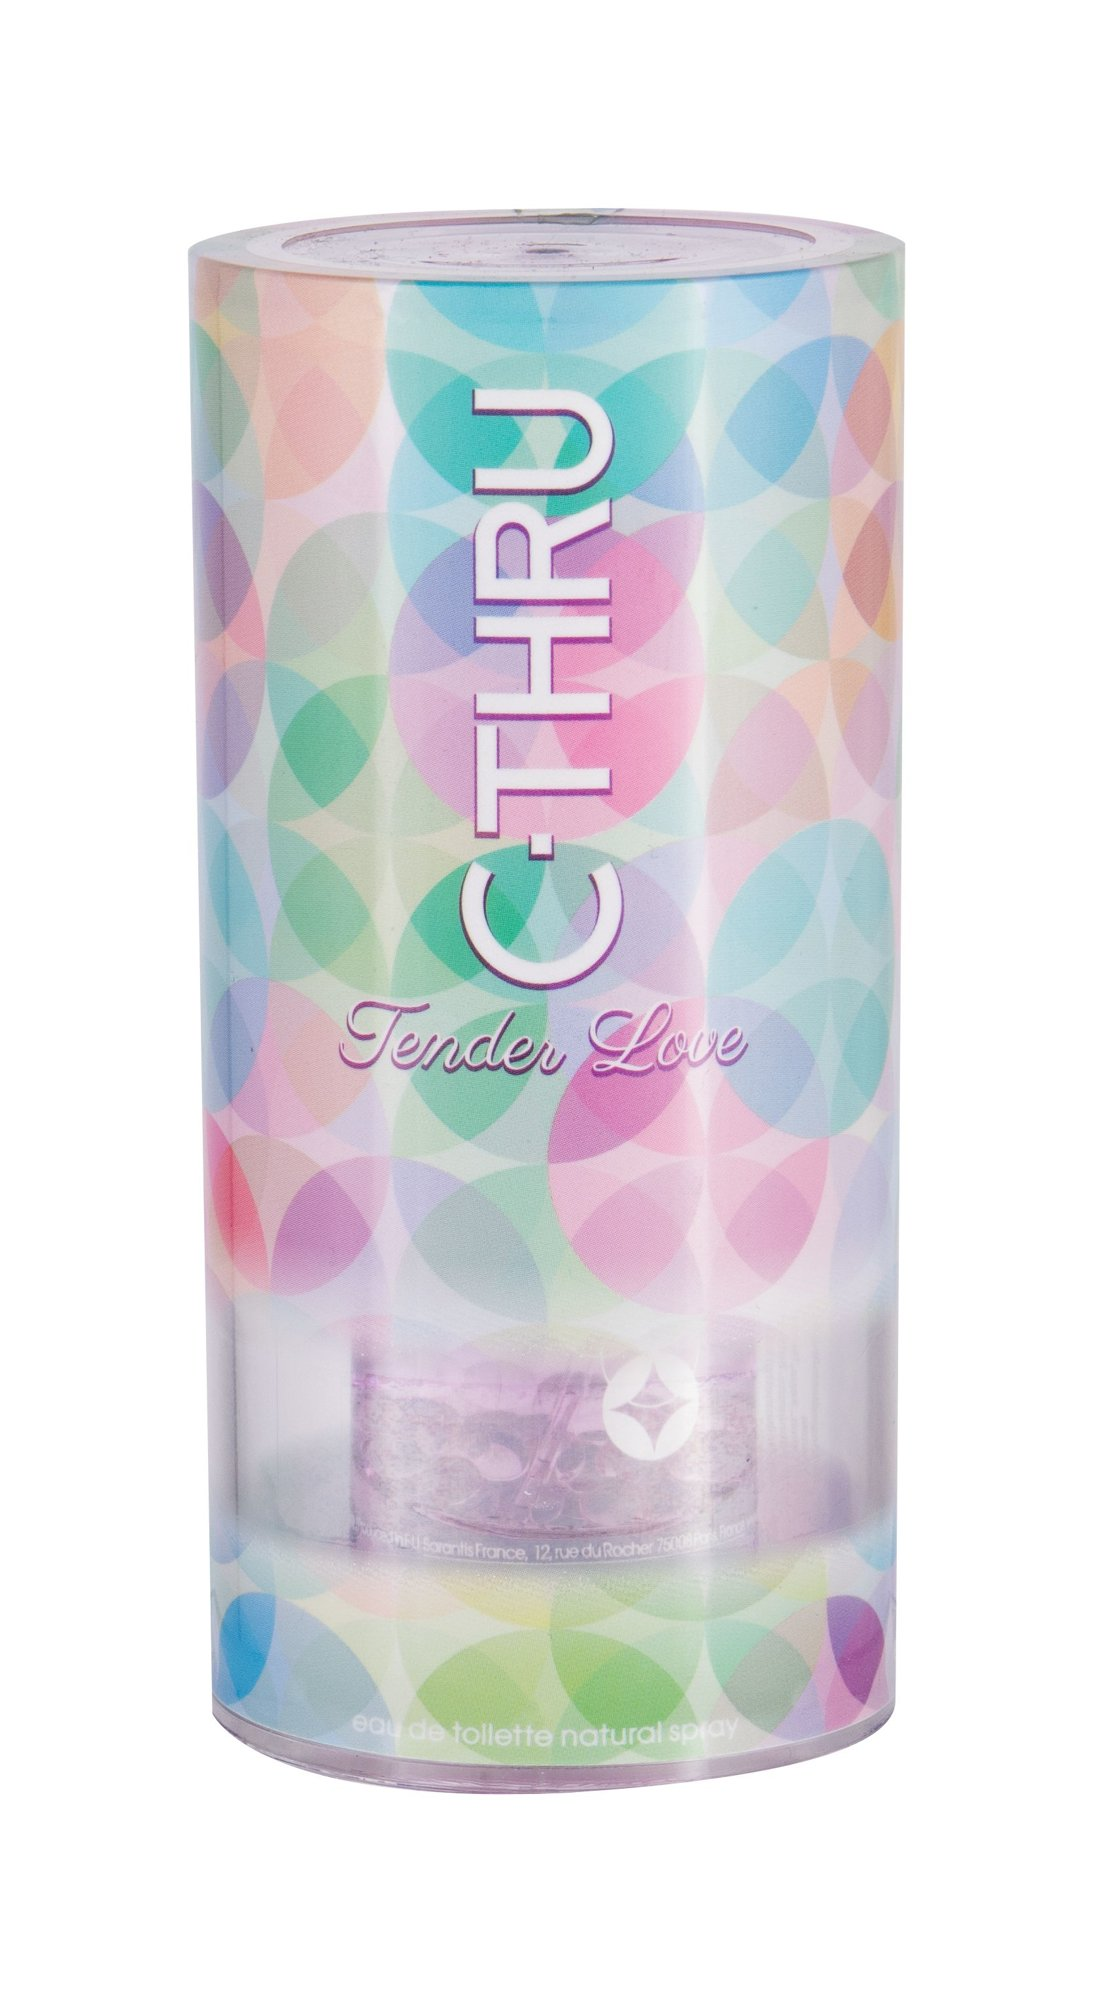 C-THRU Tender Love Eau de Toilette 30ml